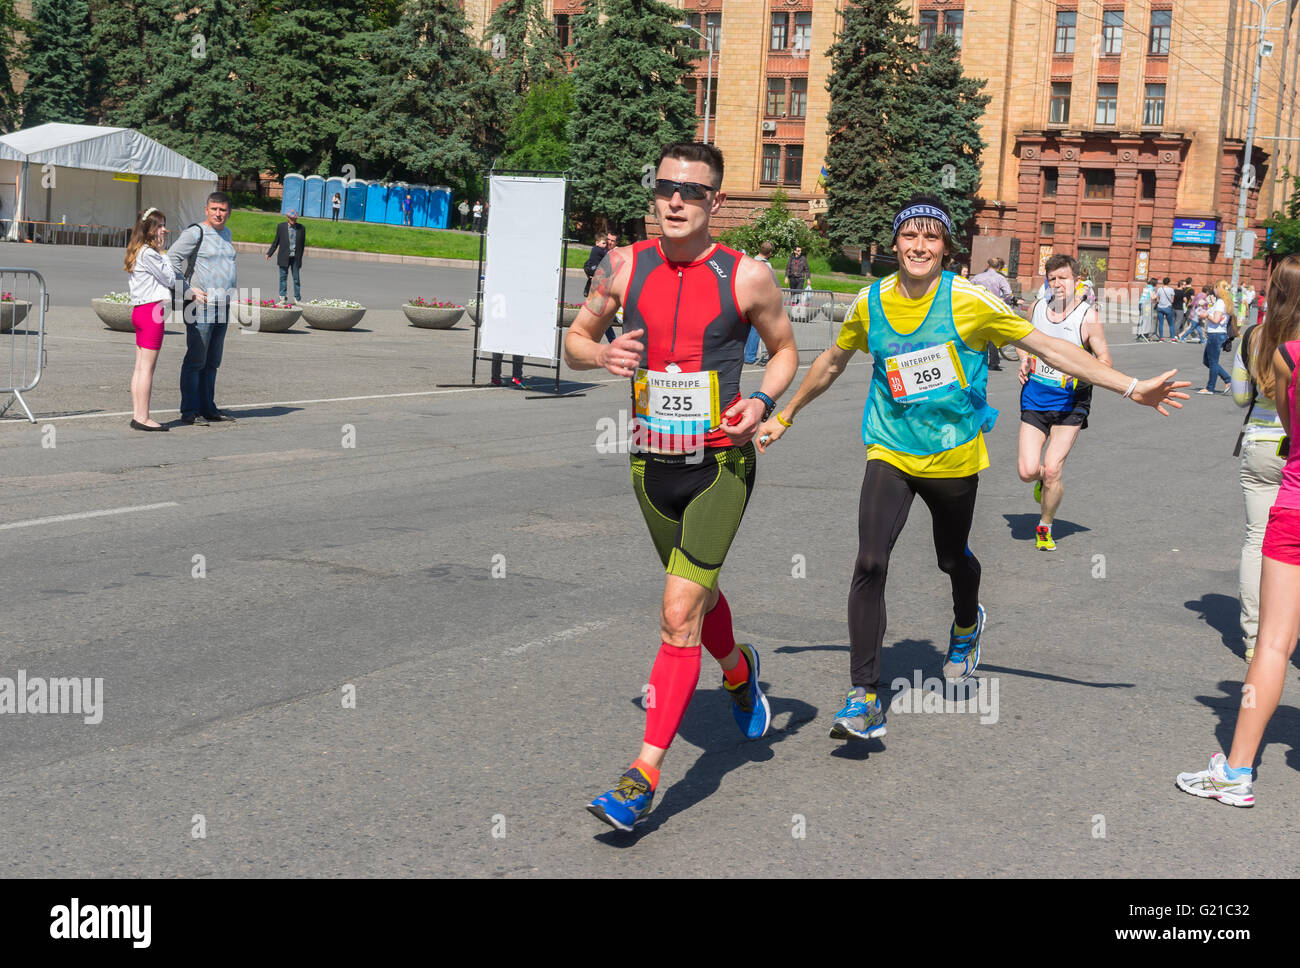 The second time at the 3rd INTERPIPE Dnipro Half Marathon will be the Family Run Family Run